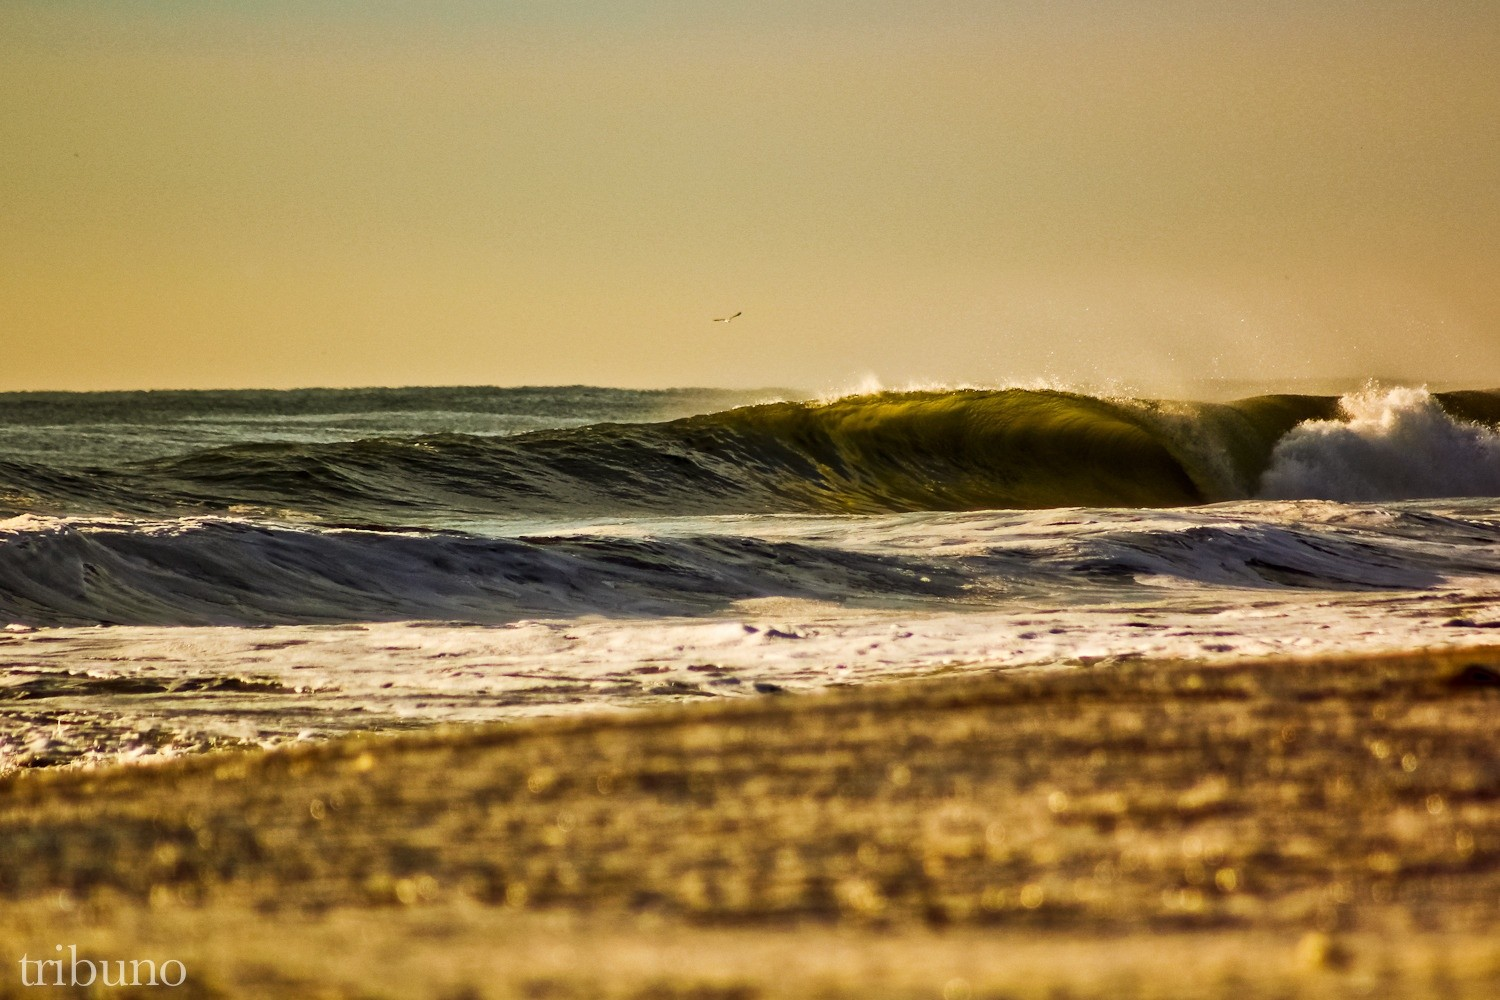 nicktribuno's photo of Ocean City, MD